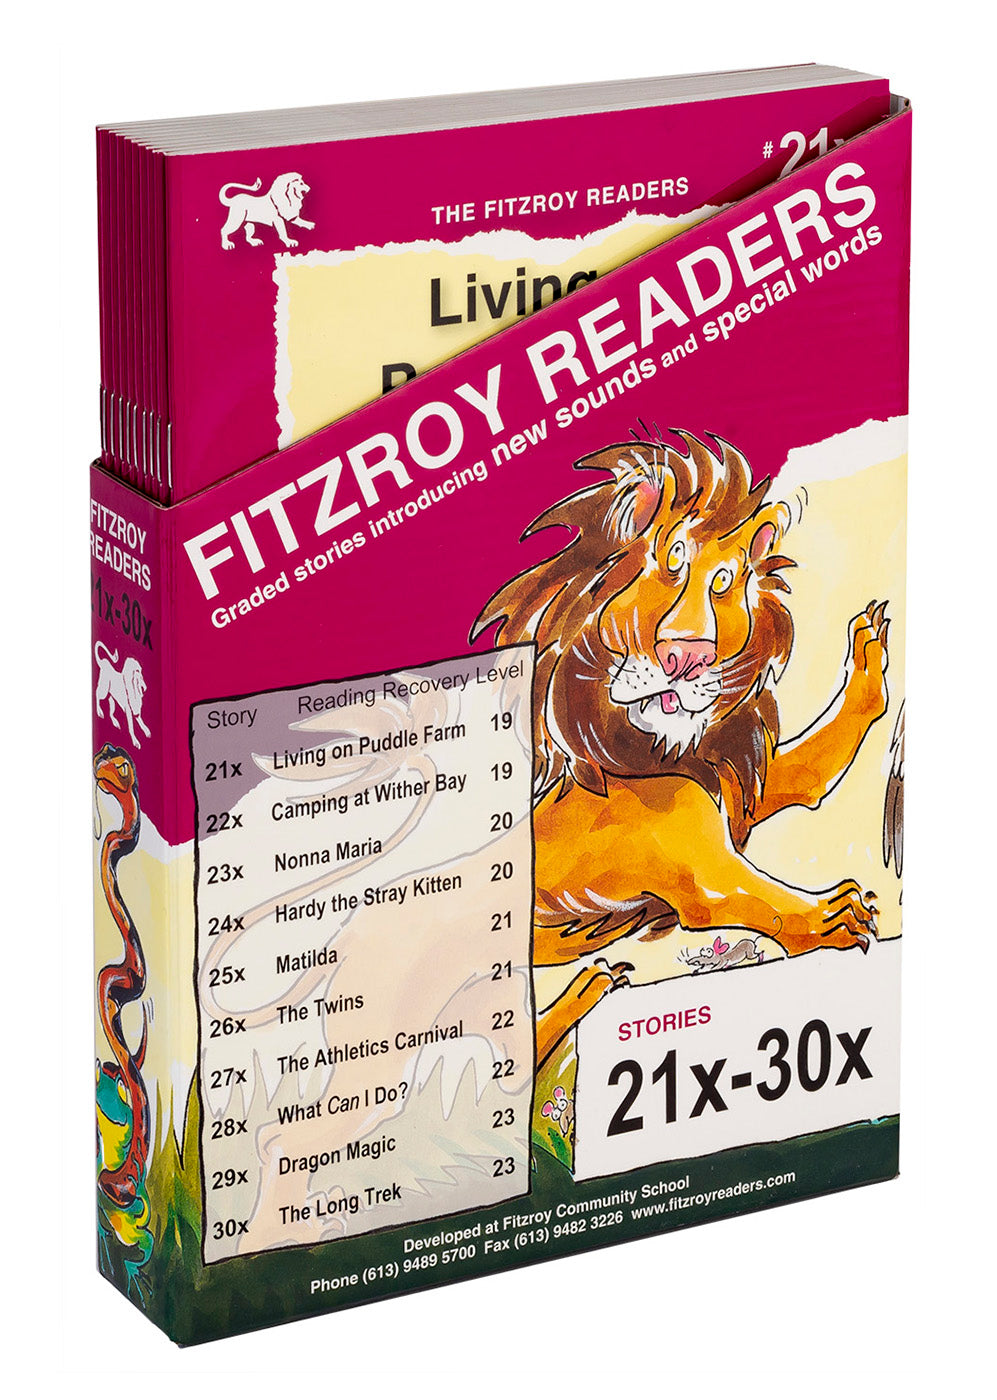 Fitzroy Readers 21x-30x